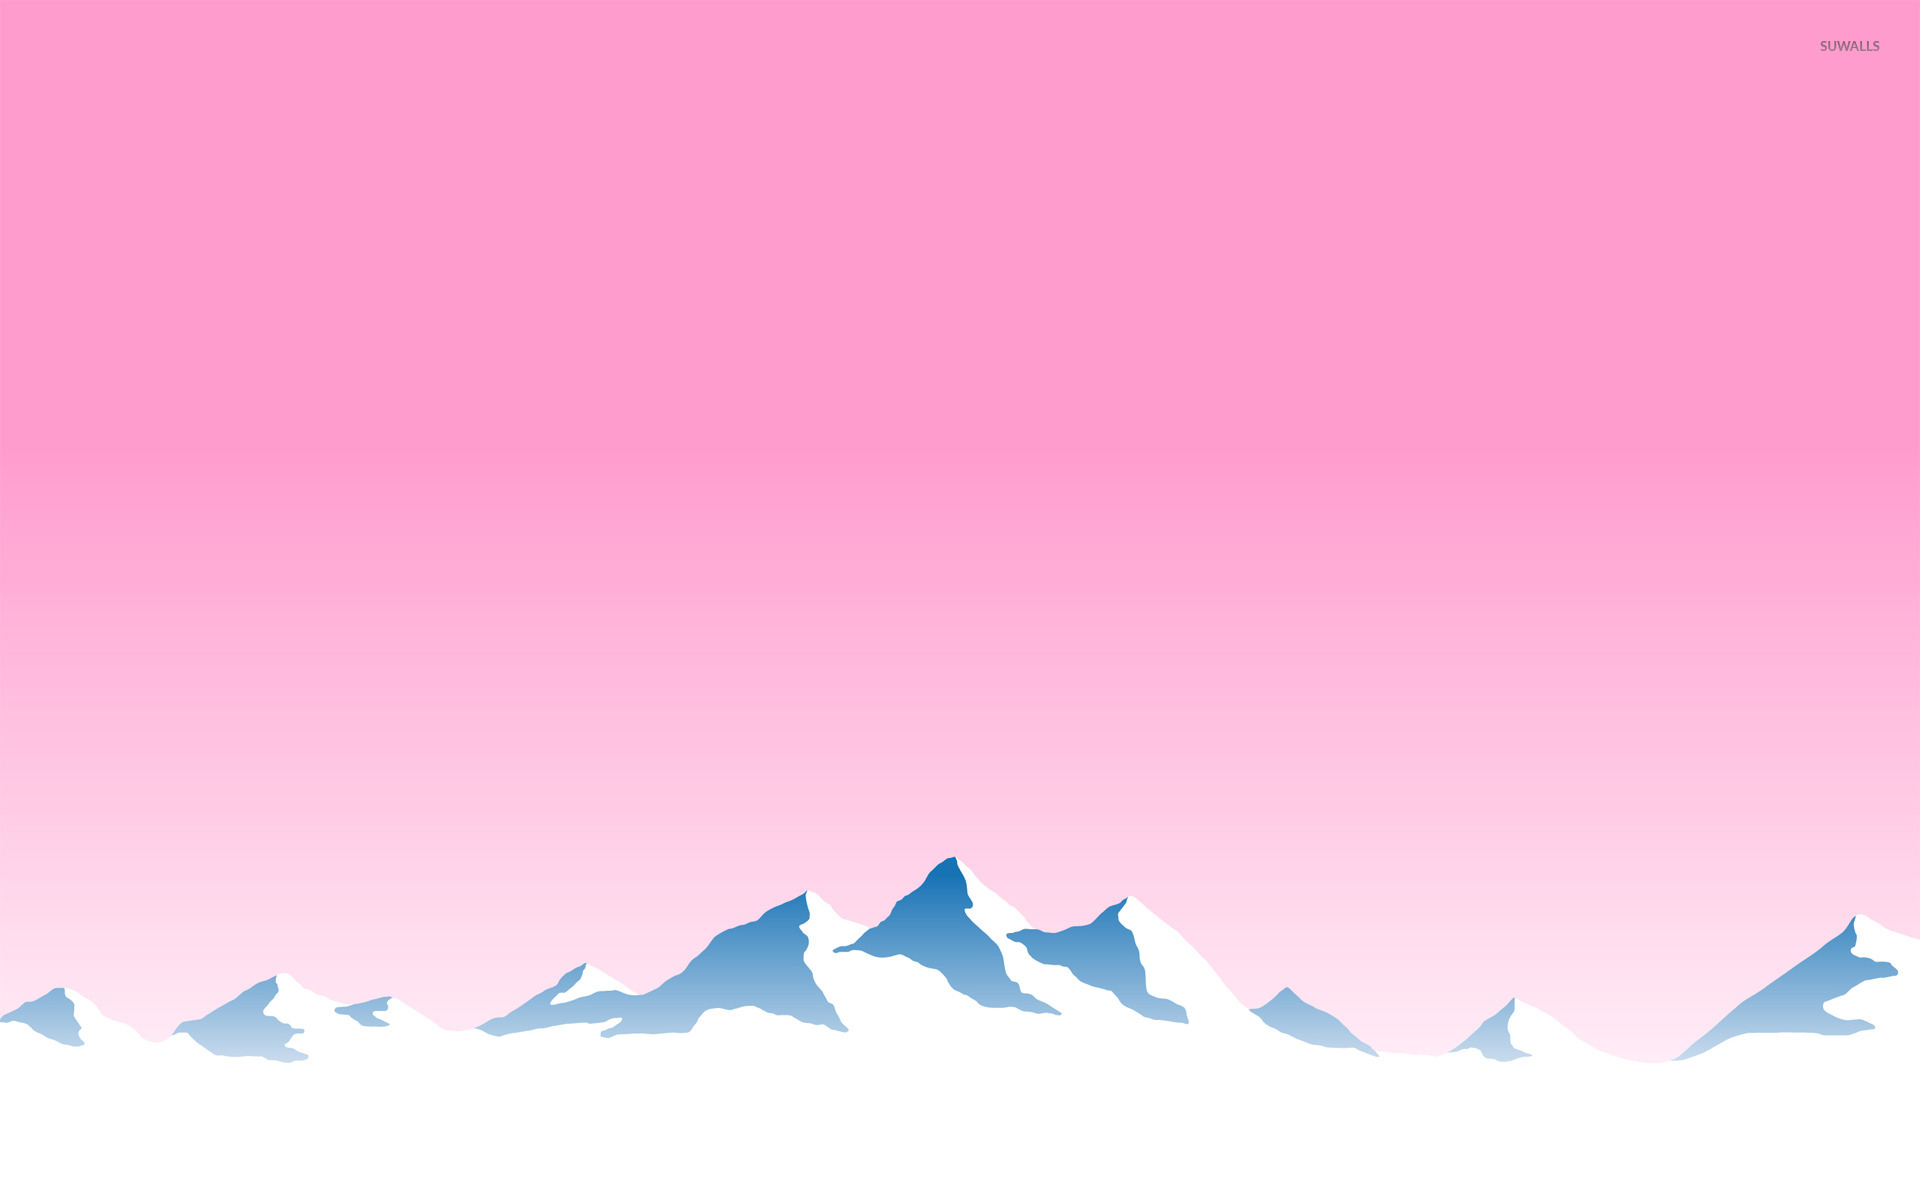 Snowy Mountains 10 Wallpaper Vector Wallpapers 16552